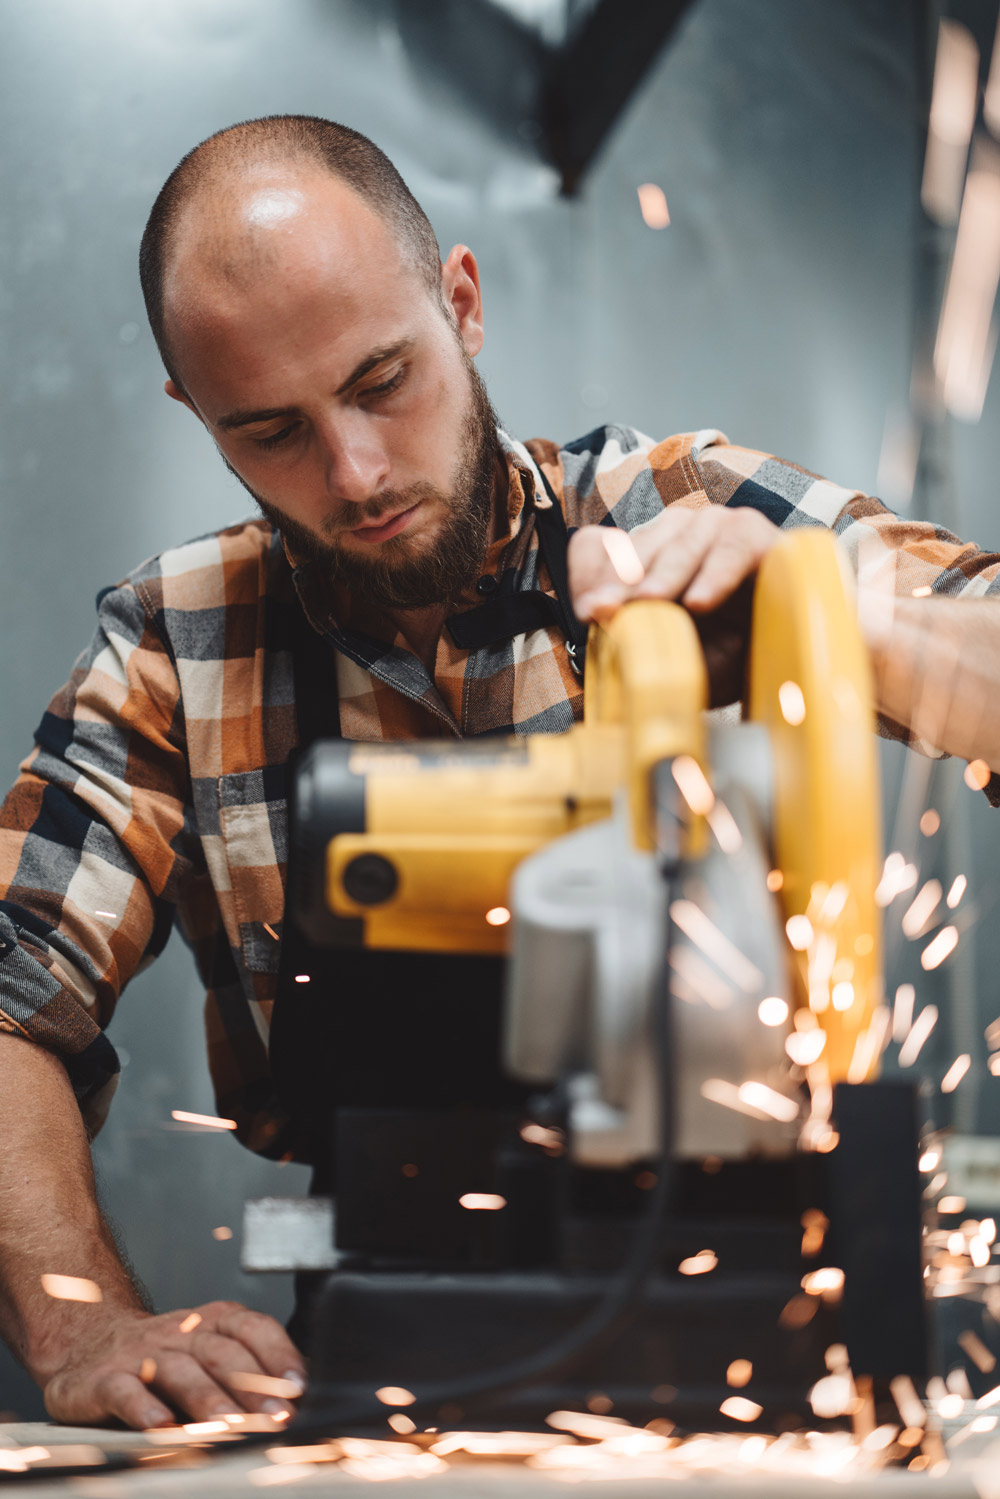 Canva---Bearded-worker-mechanic-using-electrical-angular-grinding-machine-in-metalworking.-Work-in-action.-Sparks-fly-apart